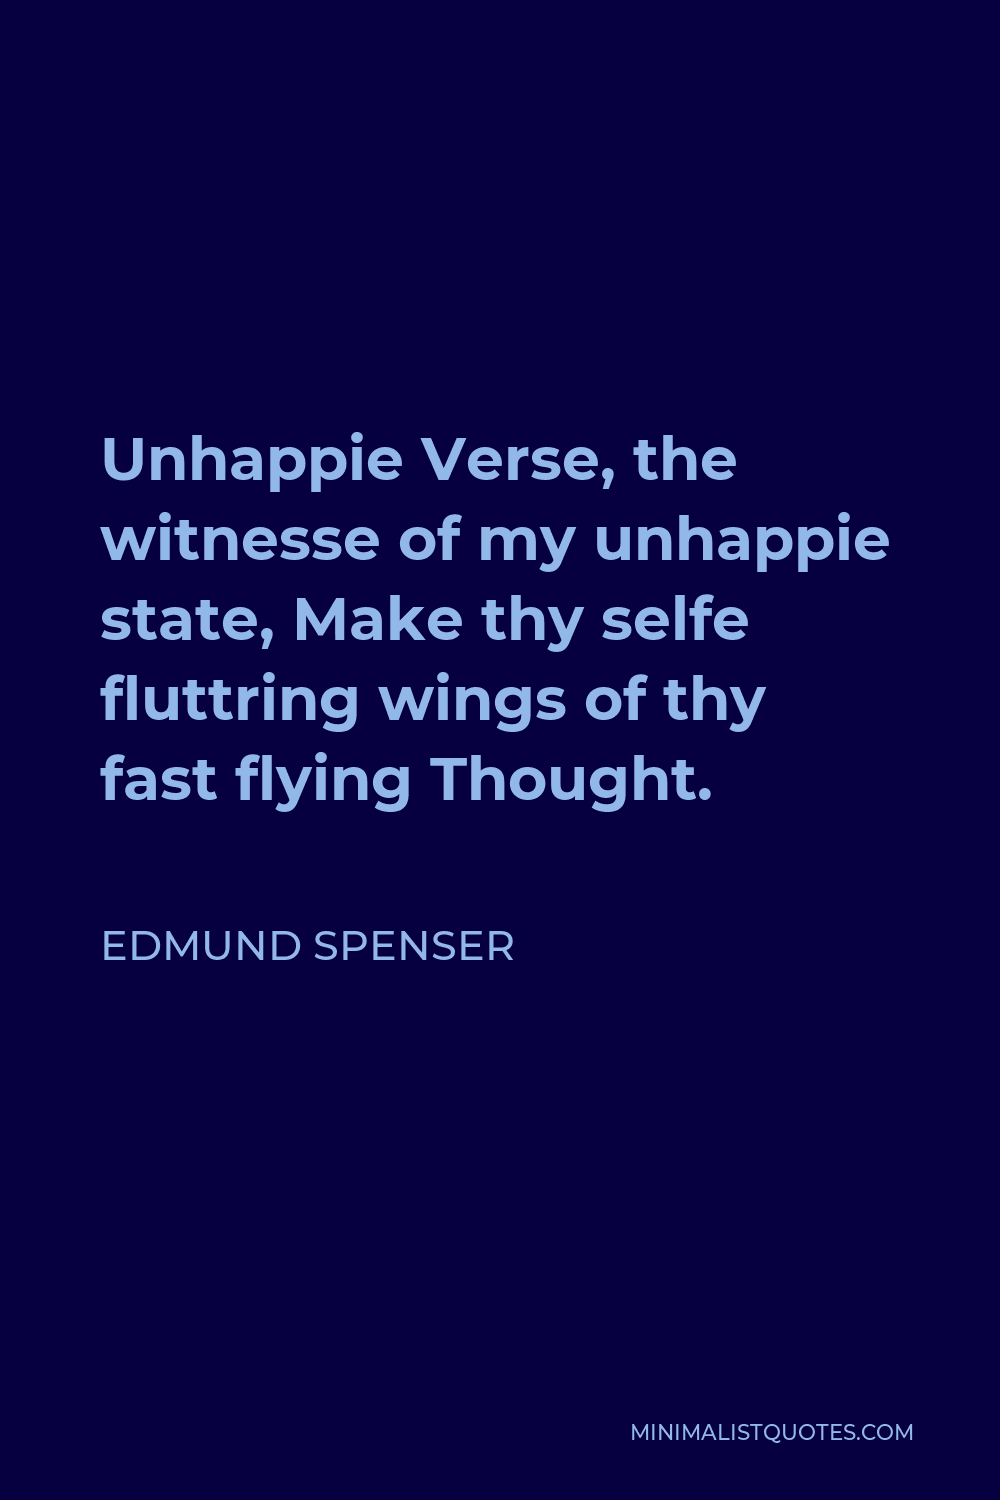 Edmund Spenser Quote - Unhappie Verse, the witnesse of my unhappie state, Make thy selfe fluttring wings of thy fast flying Thought.